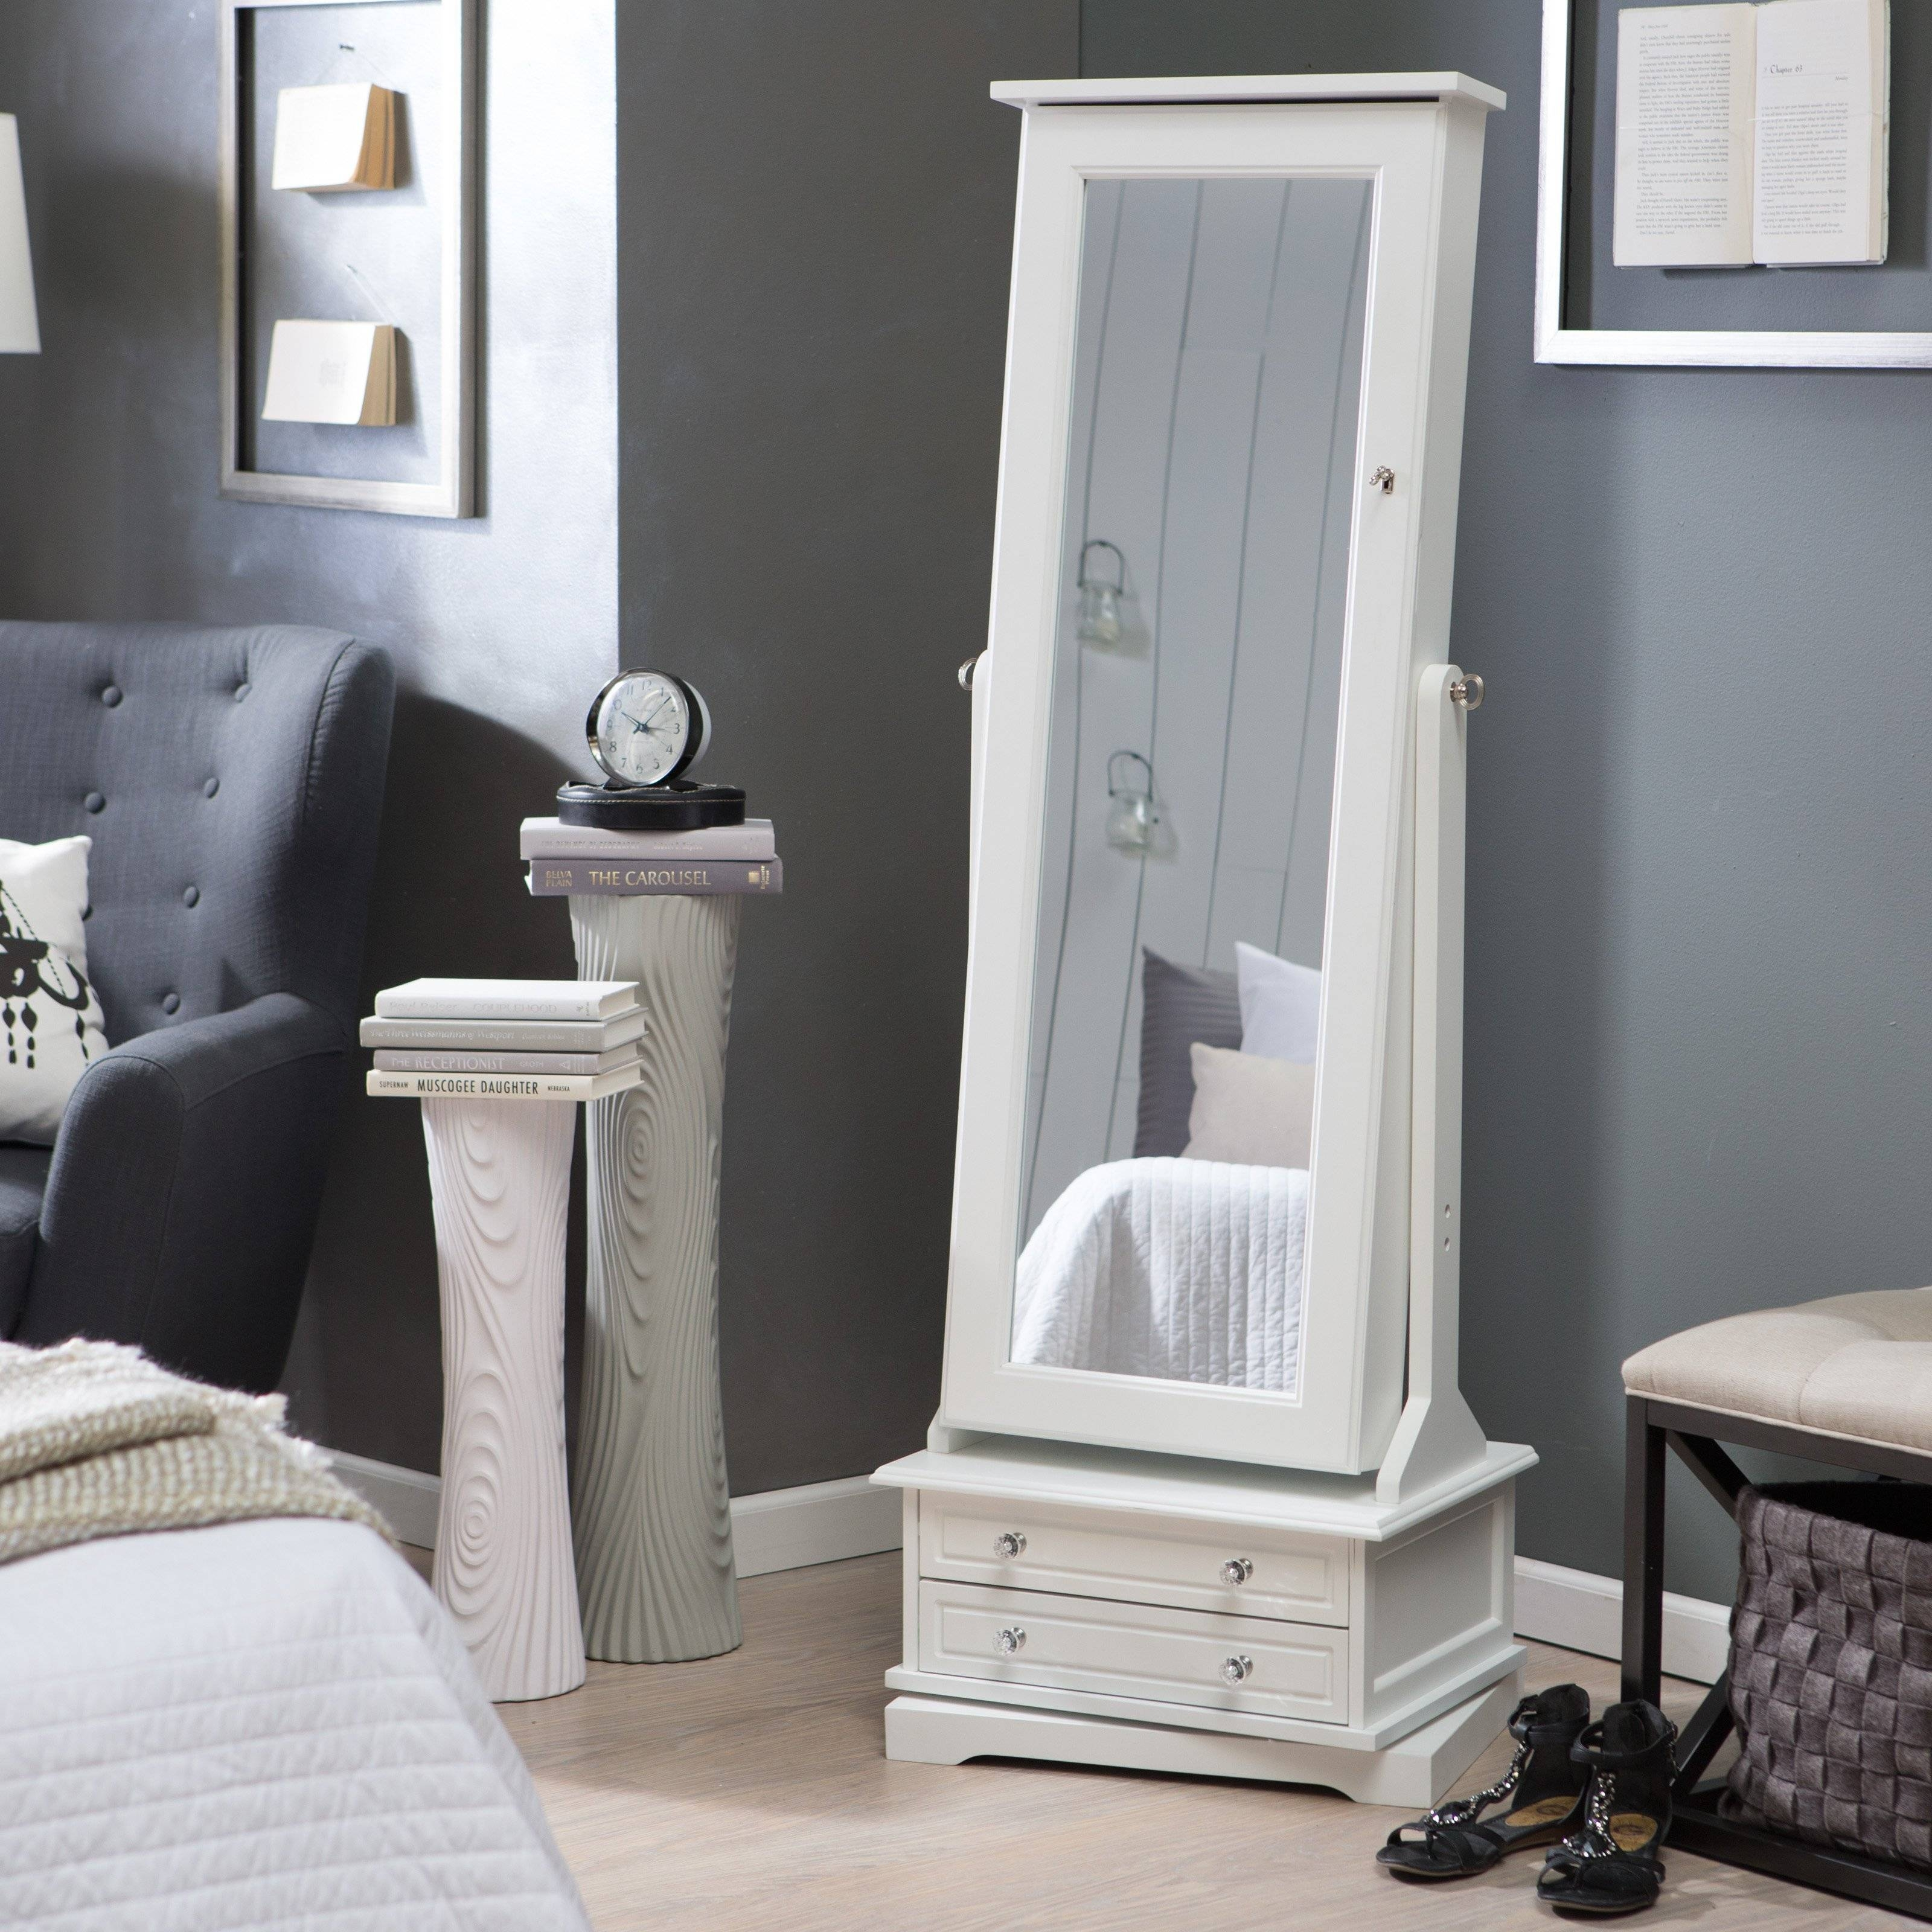 Bedroom Furniture Sets : Ceiling To Floor Large Decorative Mirrors within Extra Large Free Standing Mirrors (Image 2 of 25)